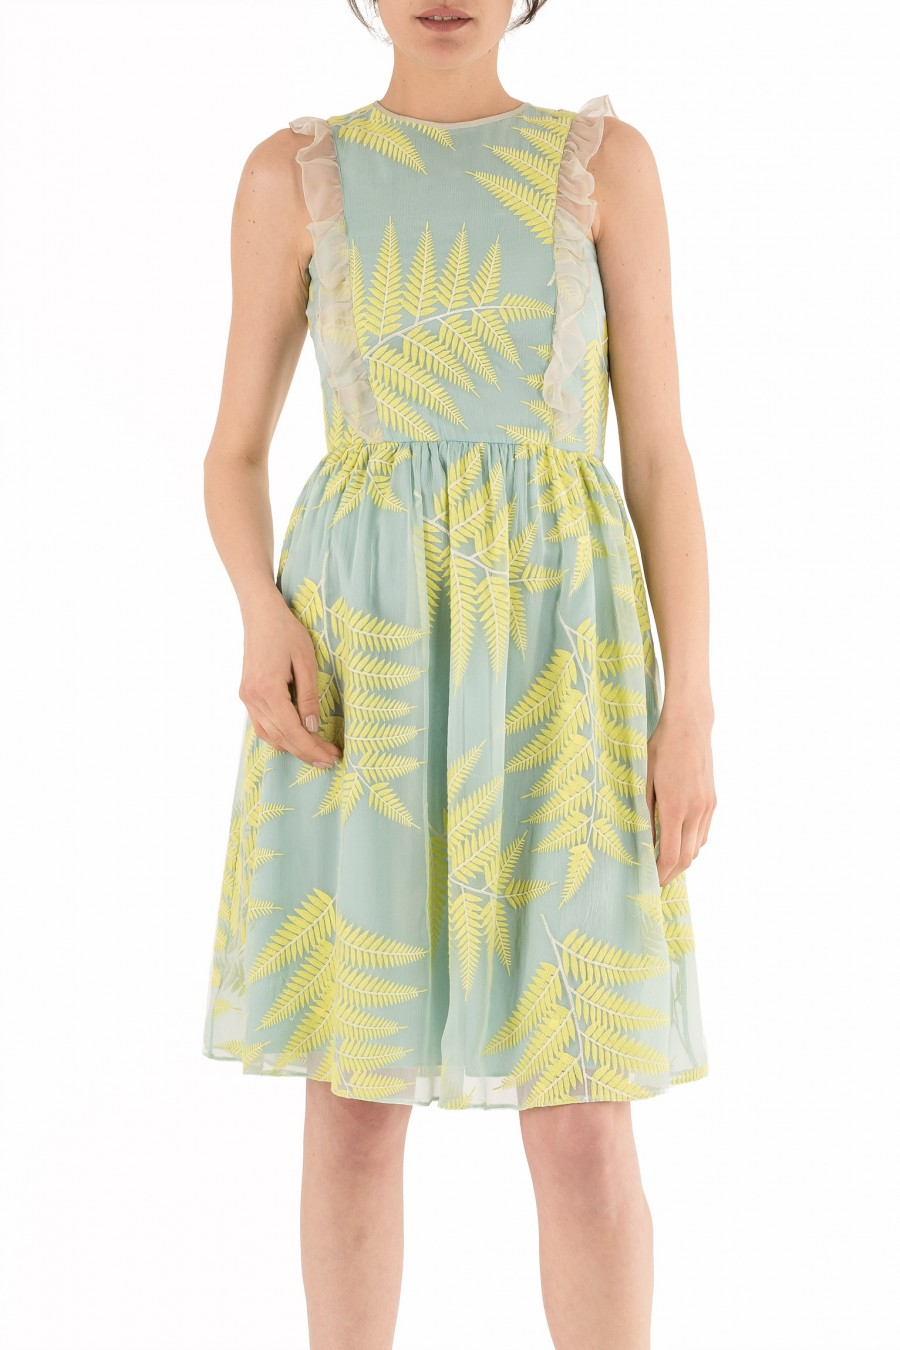 Dress with embroidered ferns